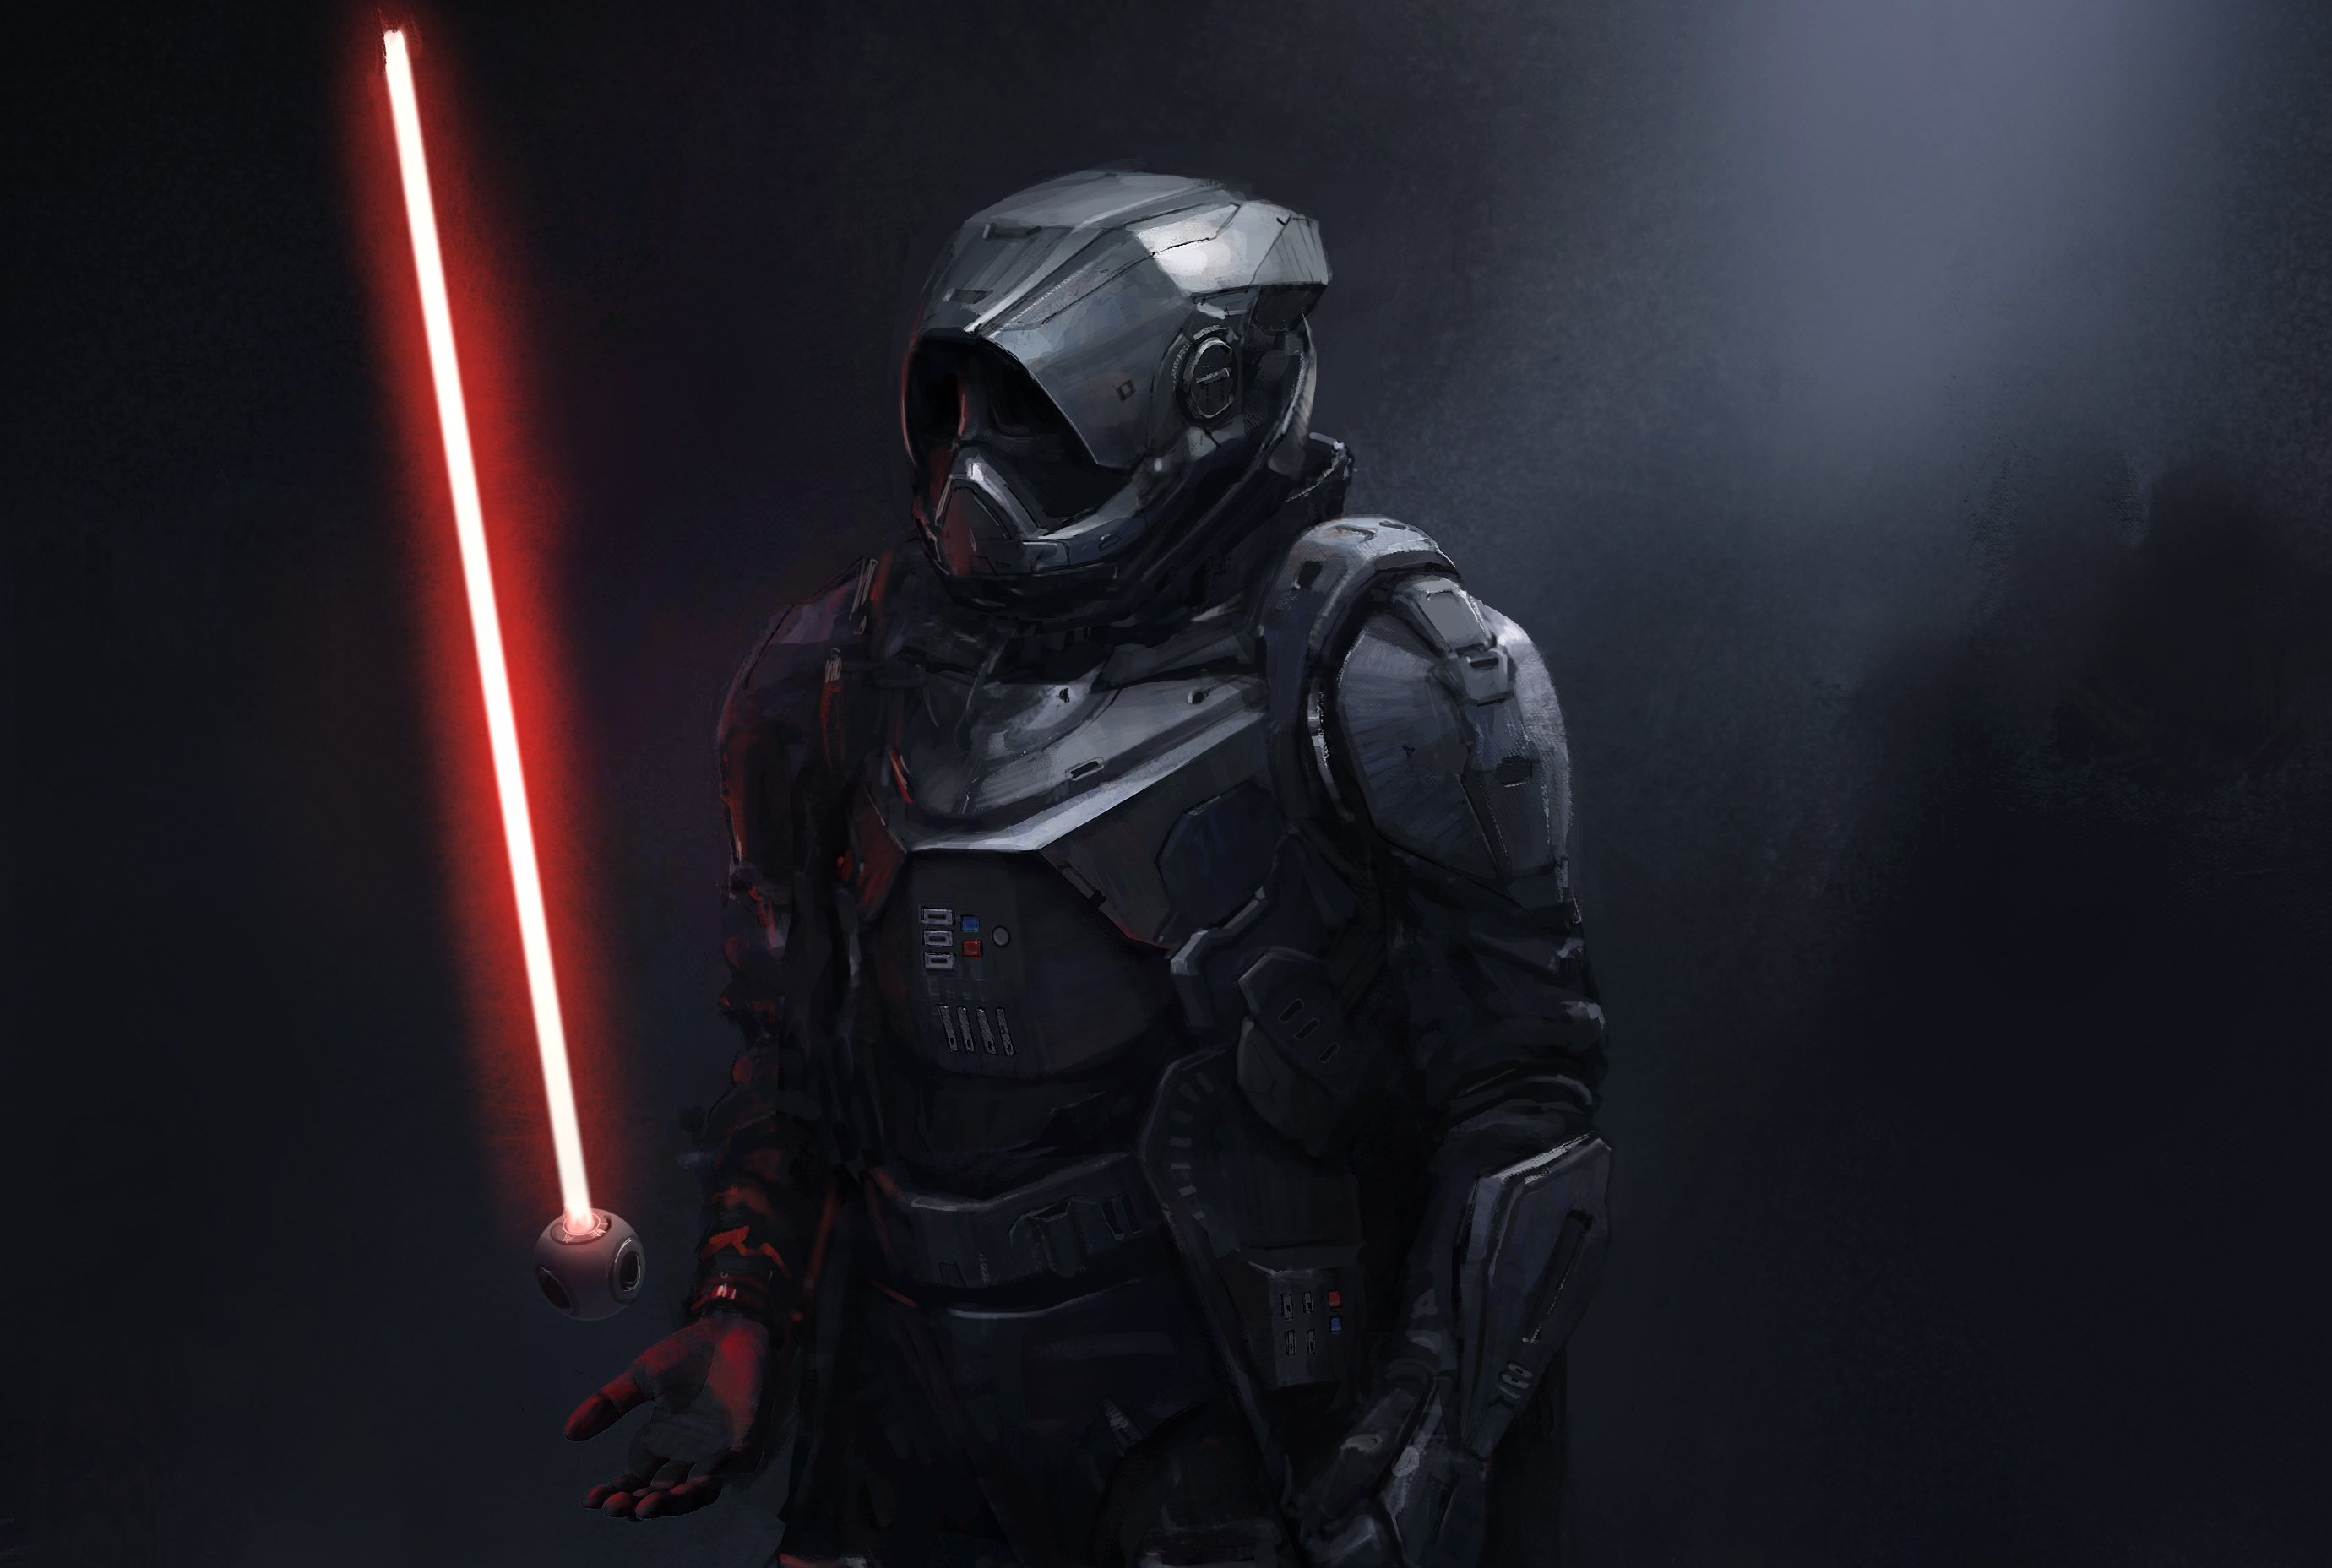 Sith Wallpaper 4k Posted By Ethan Sellers